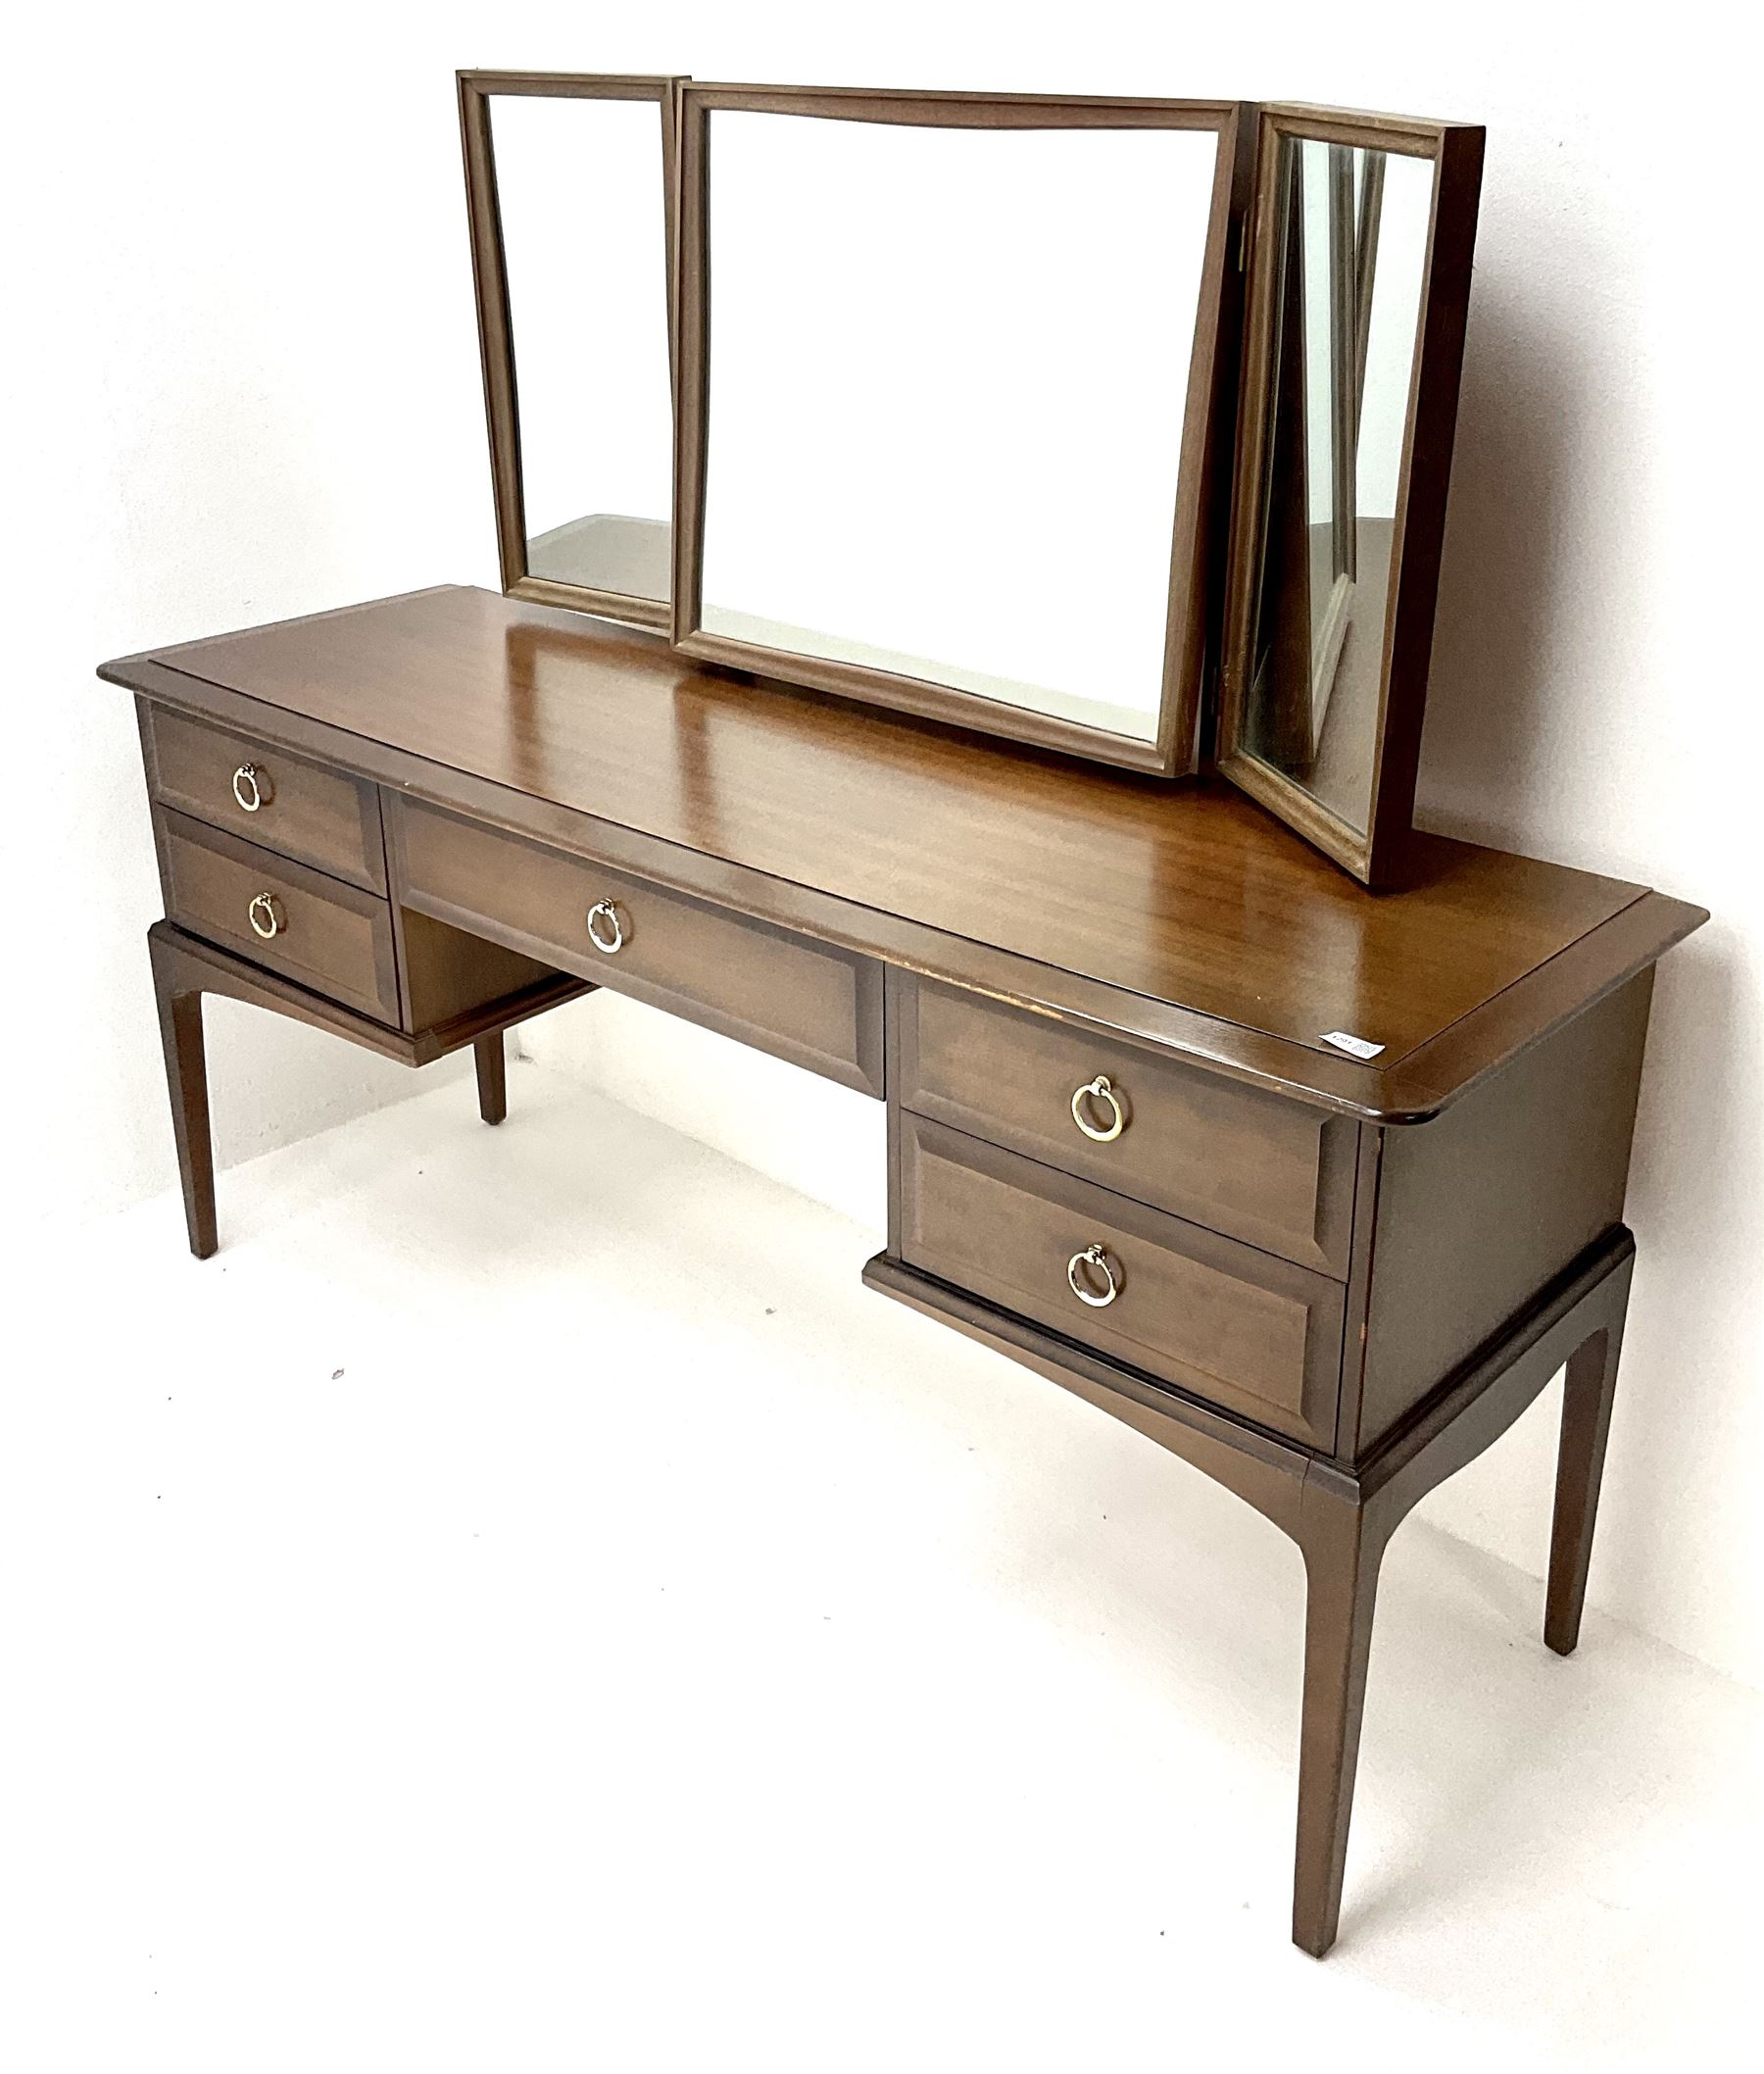 Stag minstrel dressing table - Image 2 of 2